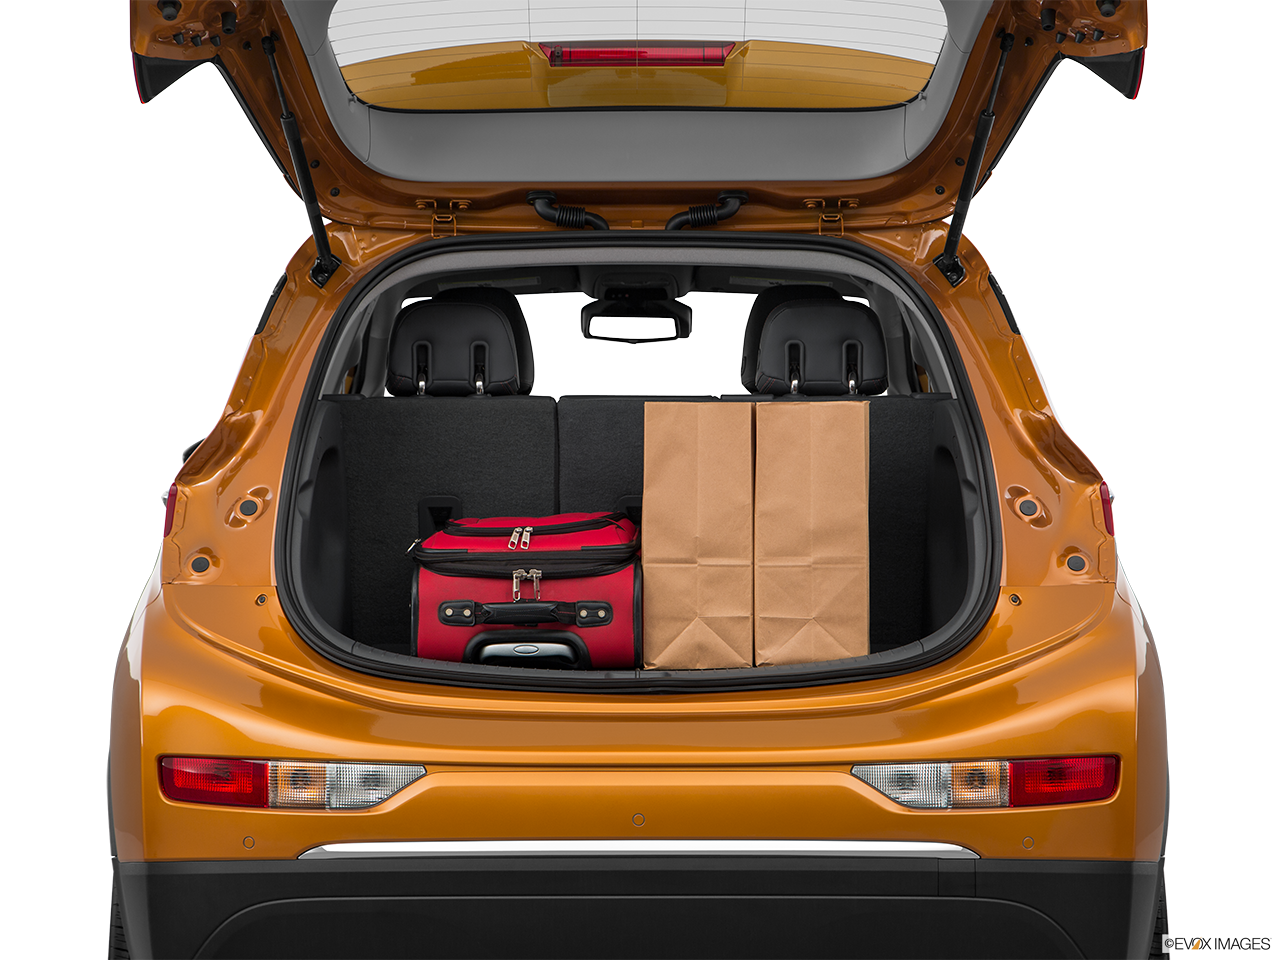 Trunk view of the Chevrolet Bolt